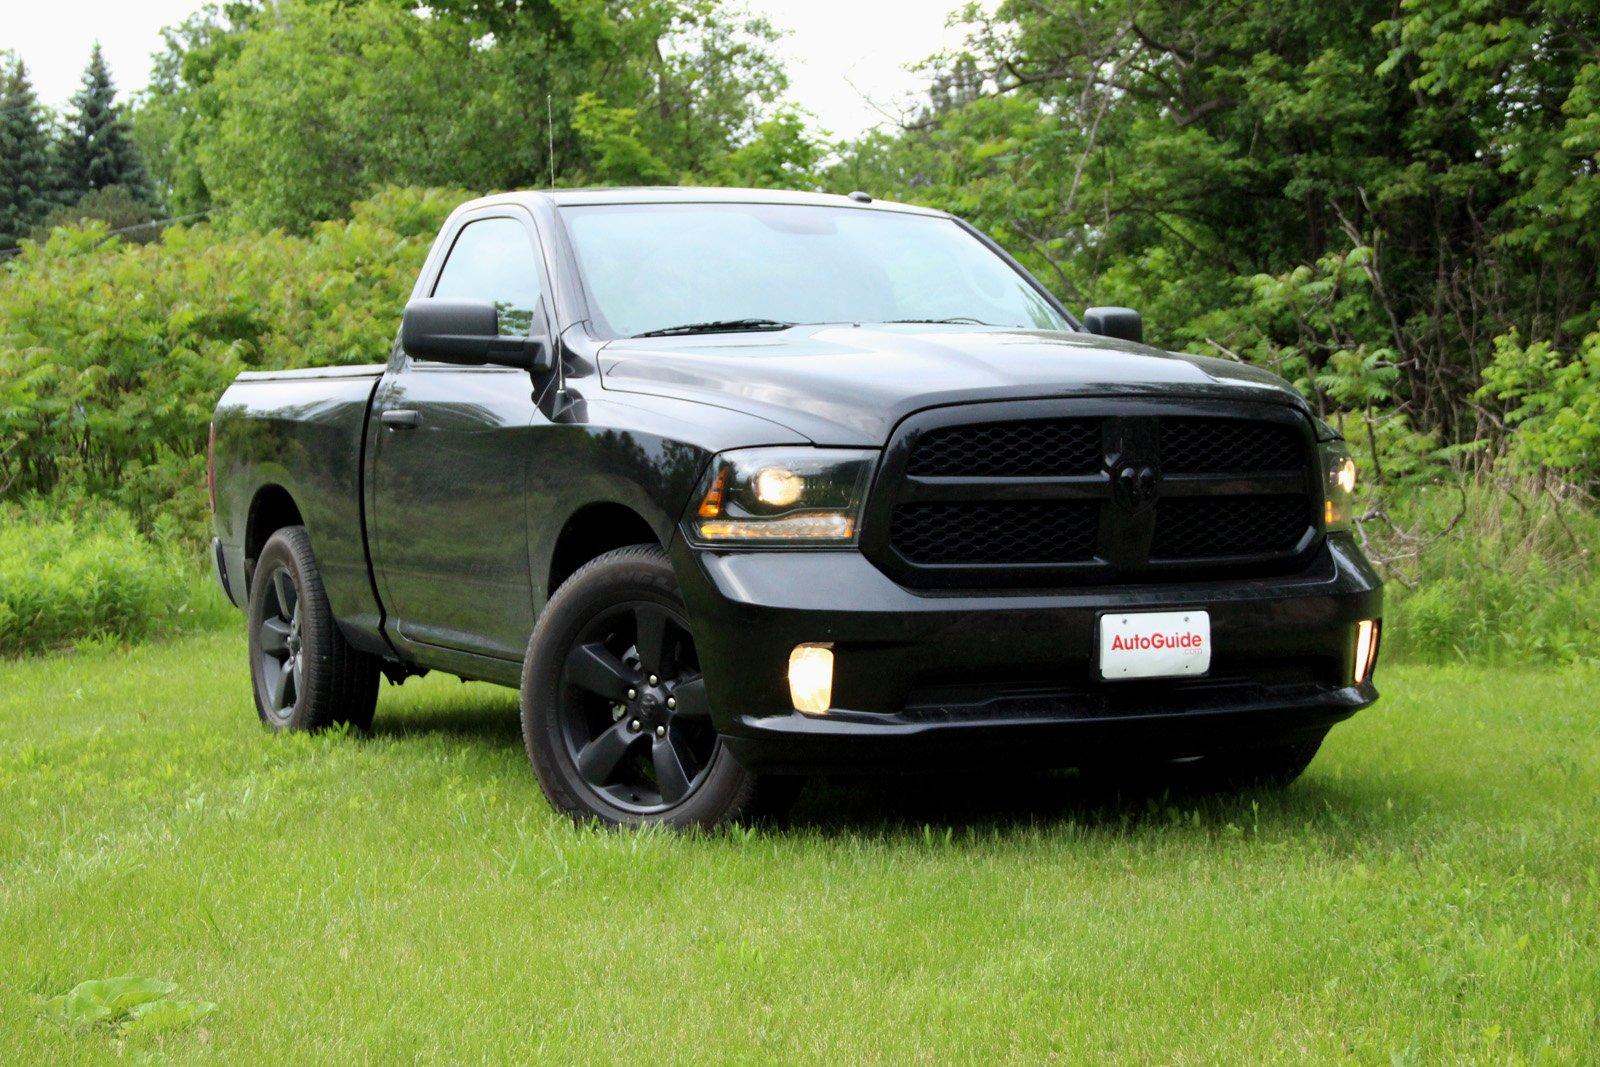 2015 Ram 1500 Black Express Review on 2014 ram 1500 hemi review